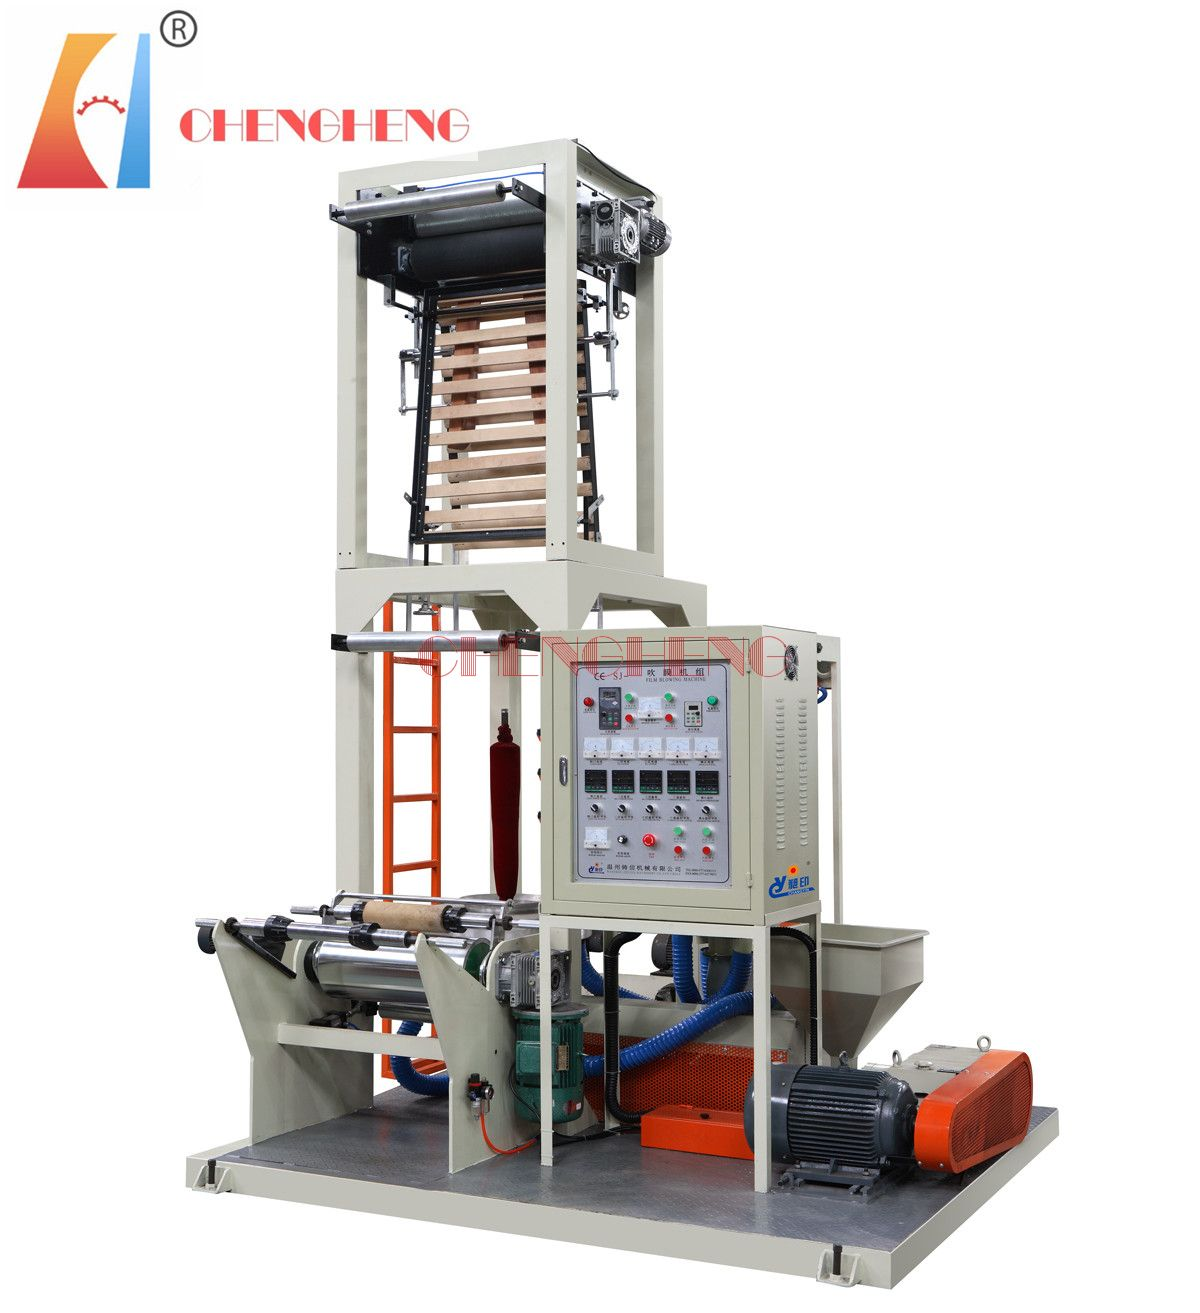 CHSJ-ME Series Economic Mini Film Blowing Machine